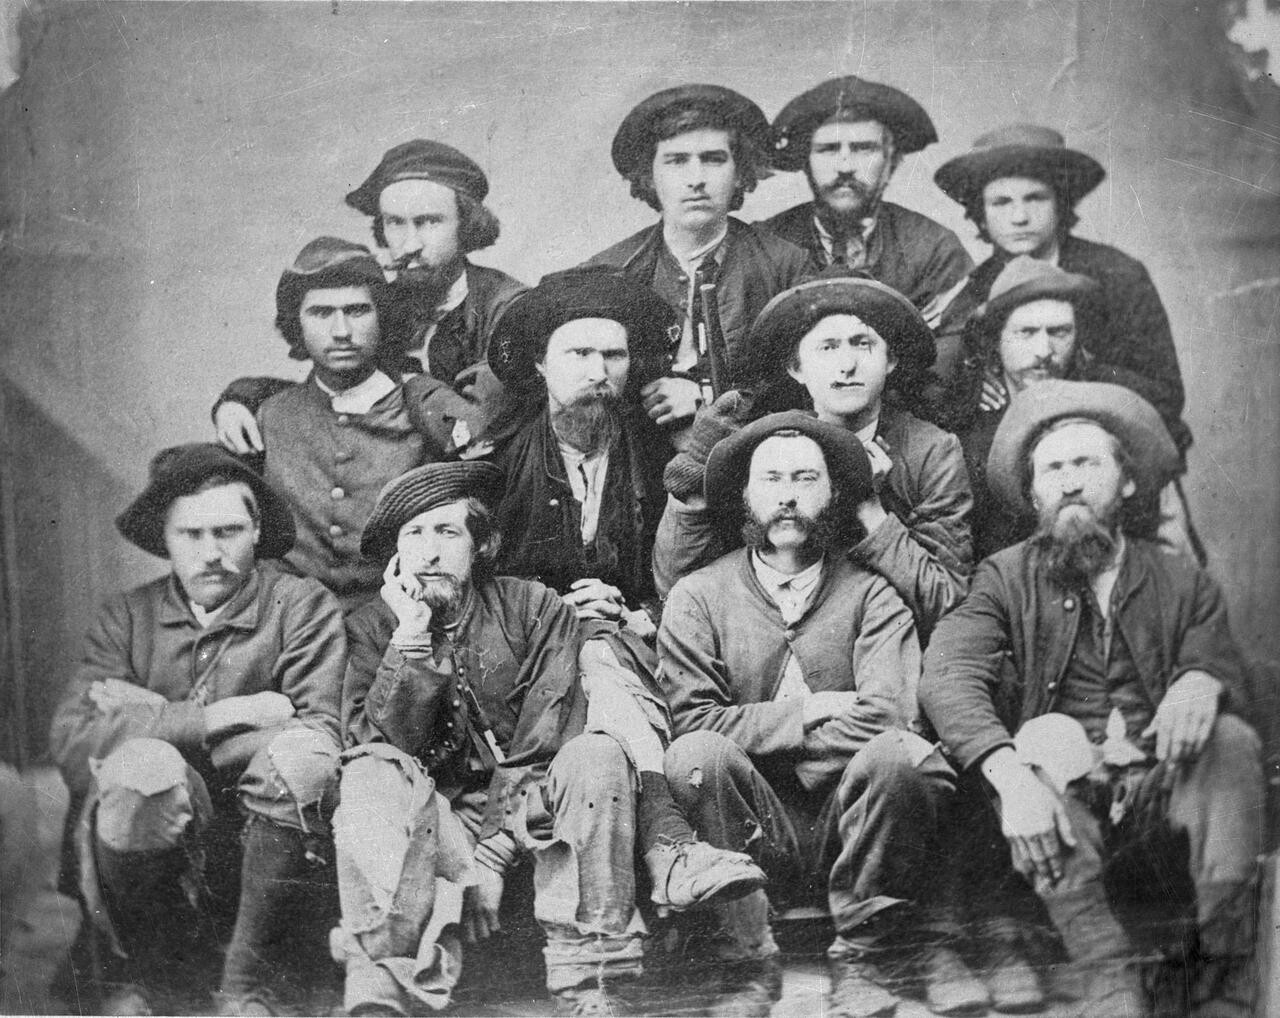 Union officers in Knoxville after escaping confederate prison in 1865